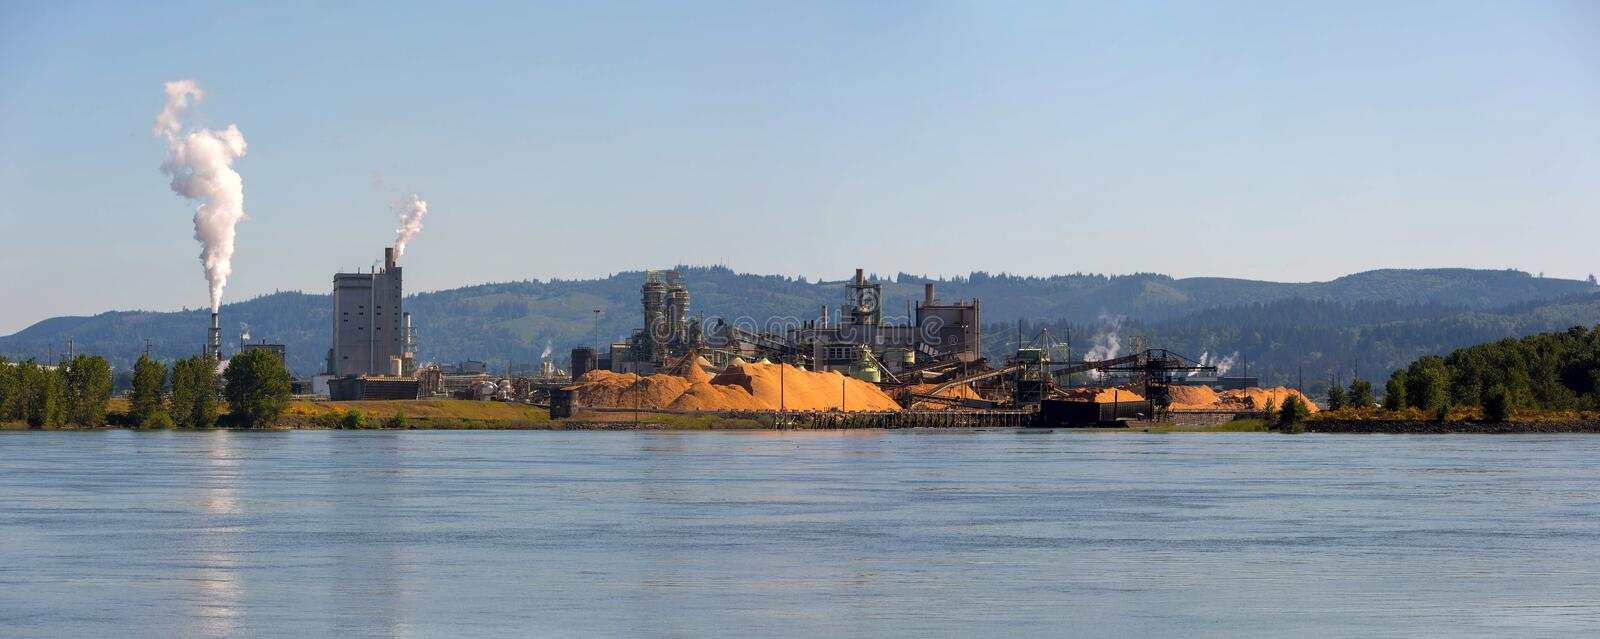 Paper Mill Along Columbia River Panorama in WA state. Pulp and Paper Mill along Columbia River in Longview Washington State Panorama stock photography